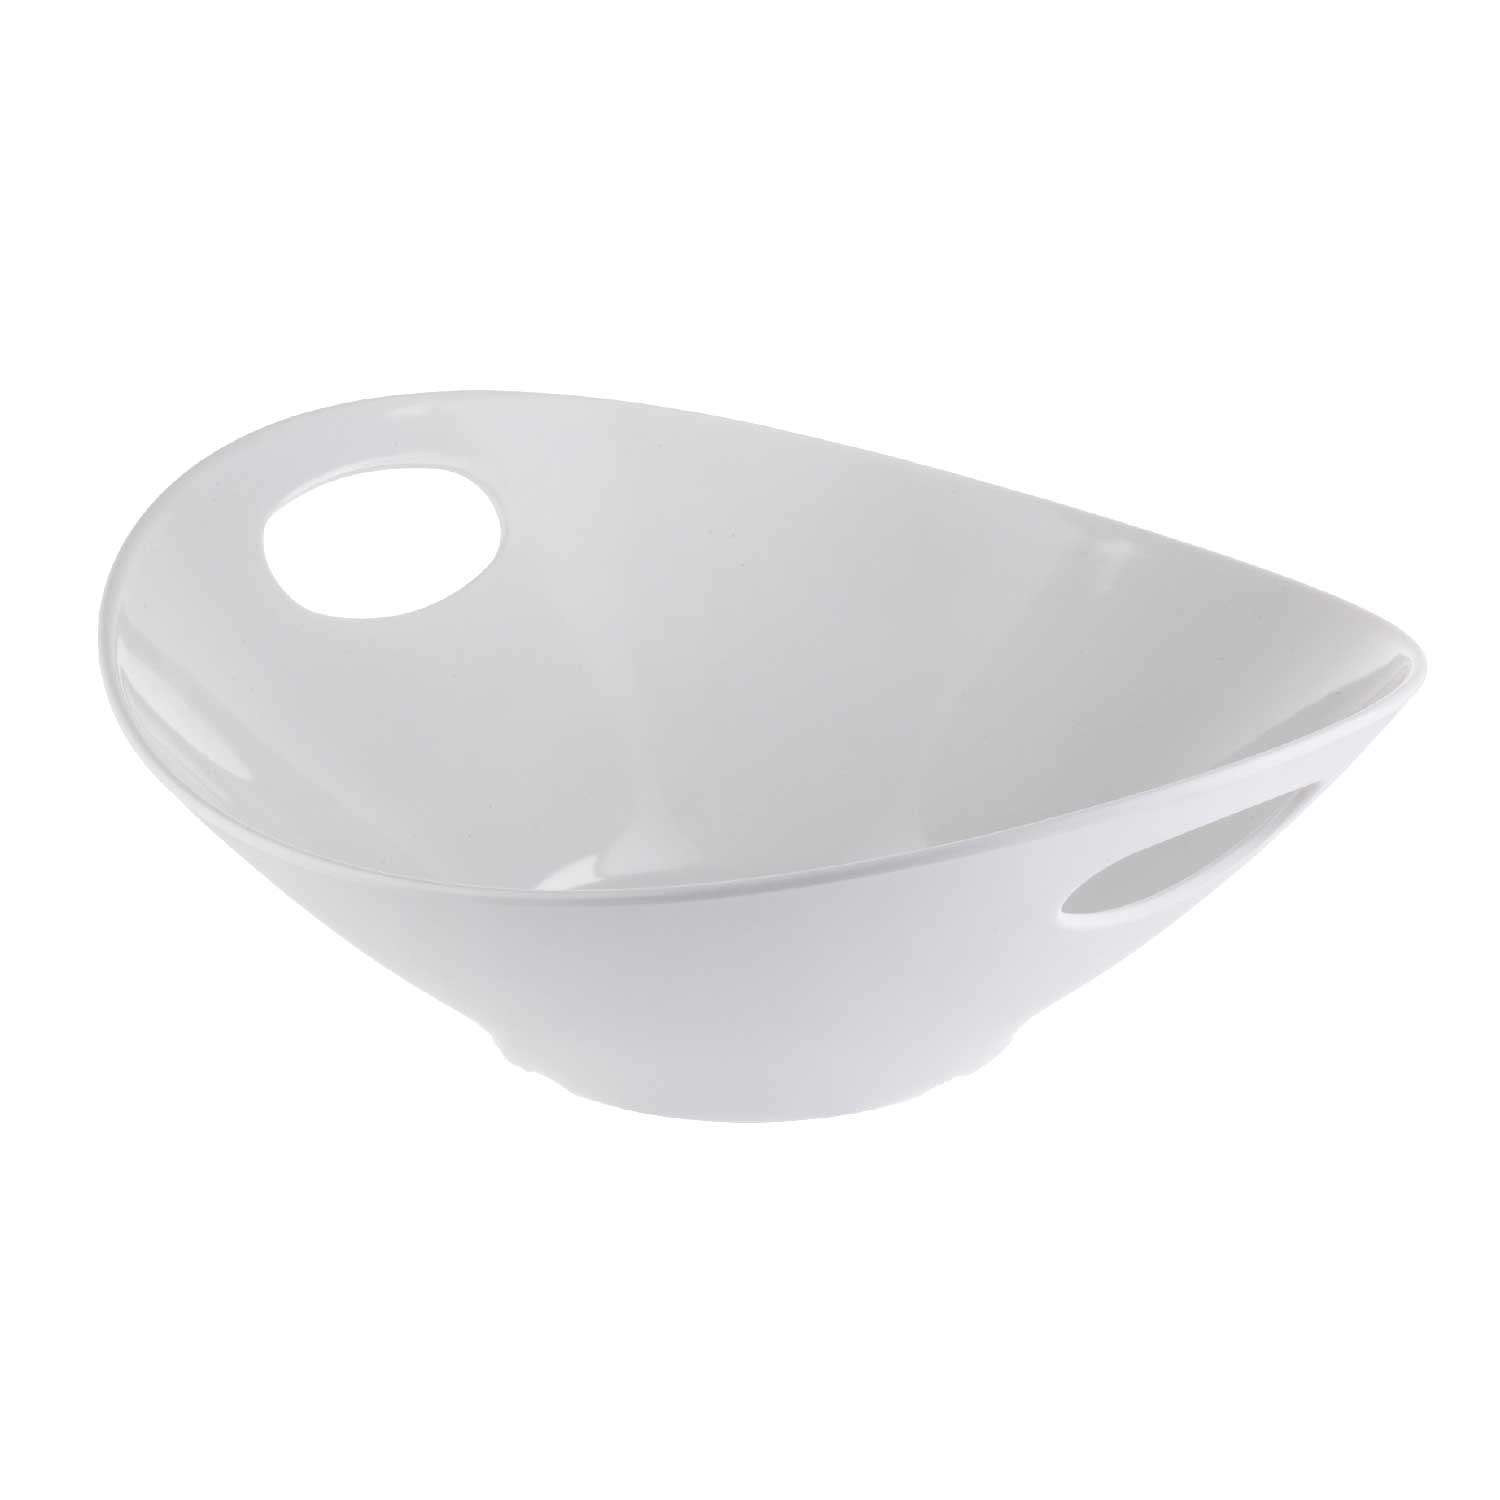 TableCraft Products 123469 serving bowl, salad pasta, plastic